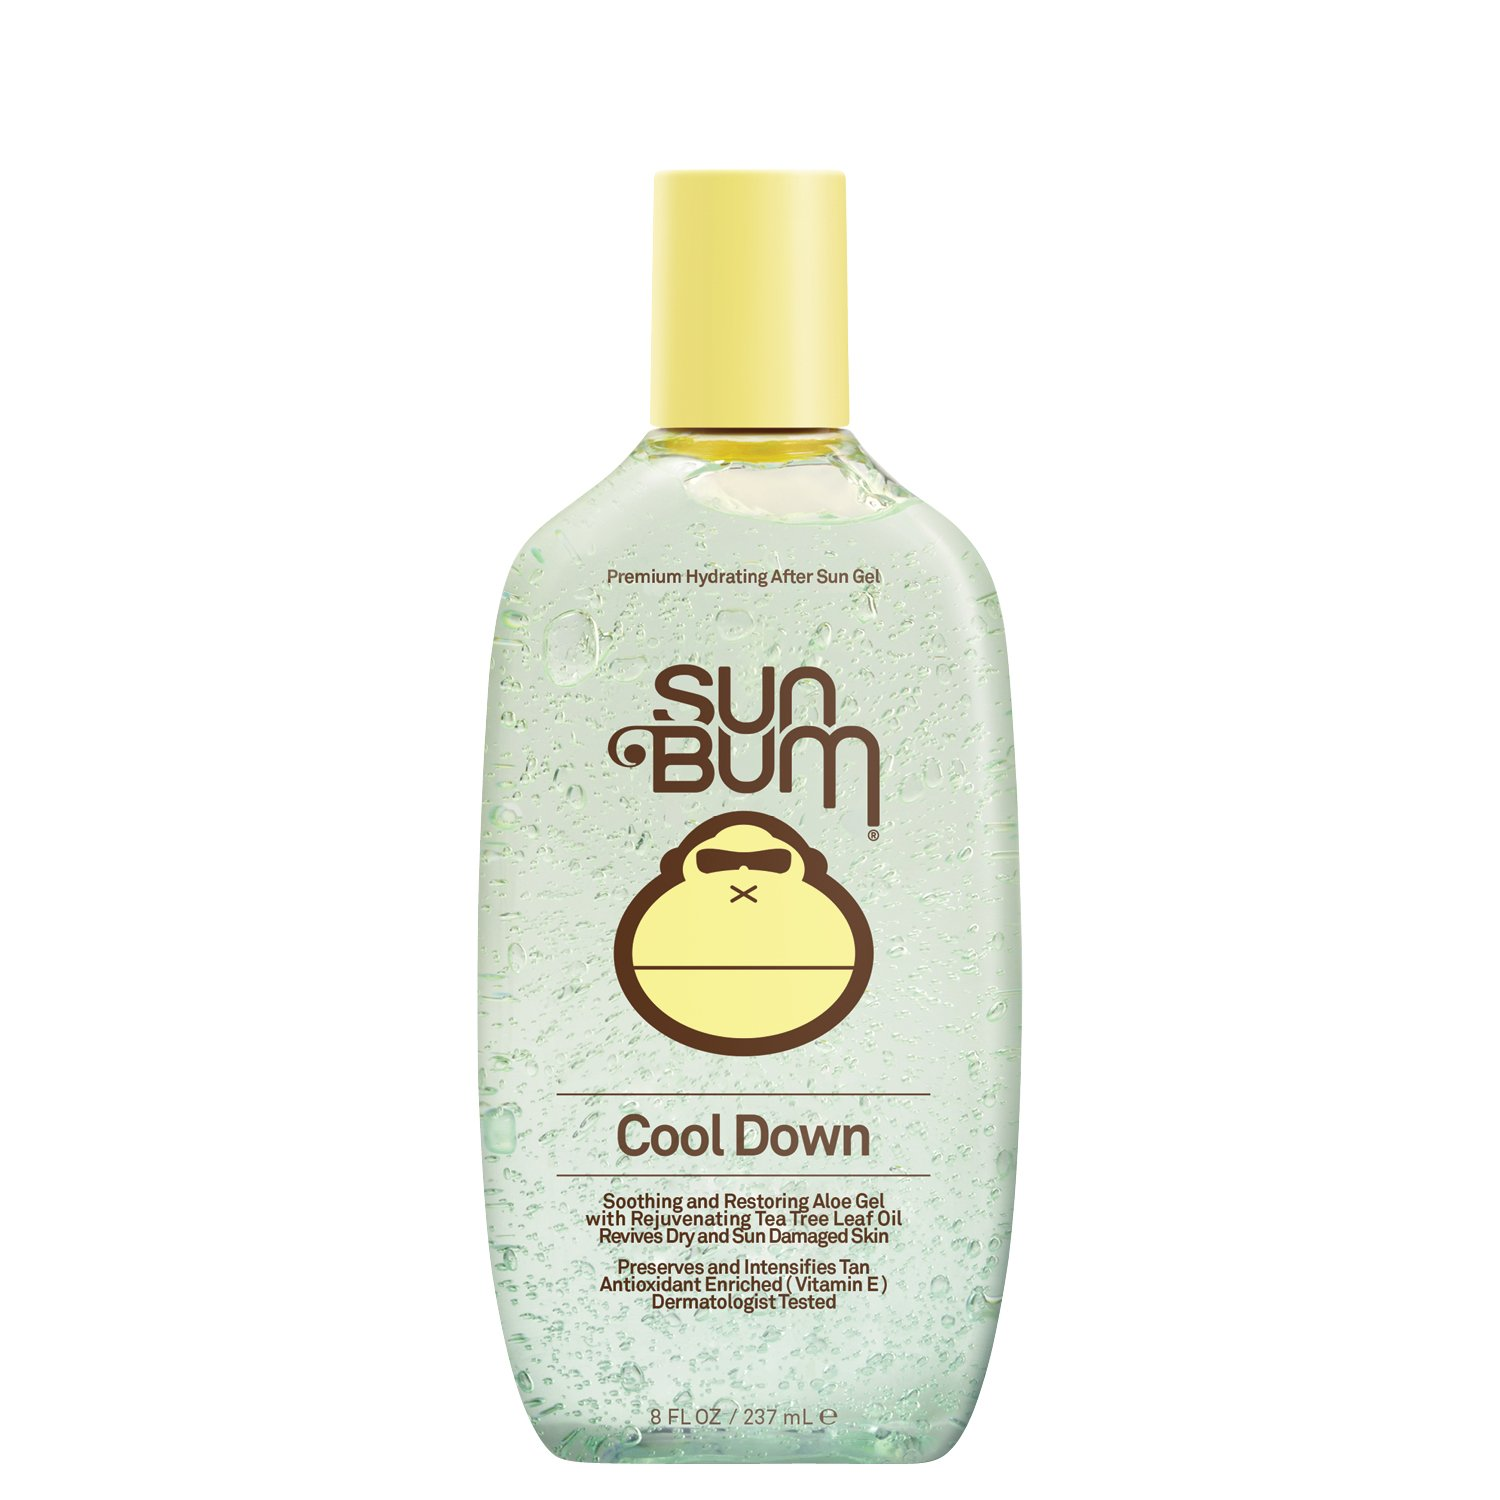 Sun Bum Cool Down Aloe Vera Gel | Vegan and Hypoallergenic After Sun Care with Cocoa Butter to Soothe and Hydrate Sunburn Pain Relief | 8 oz, Model:Sun Gel